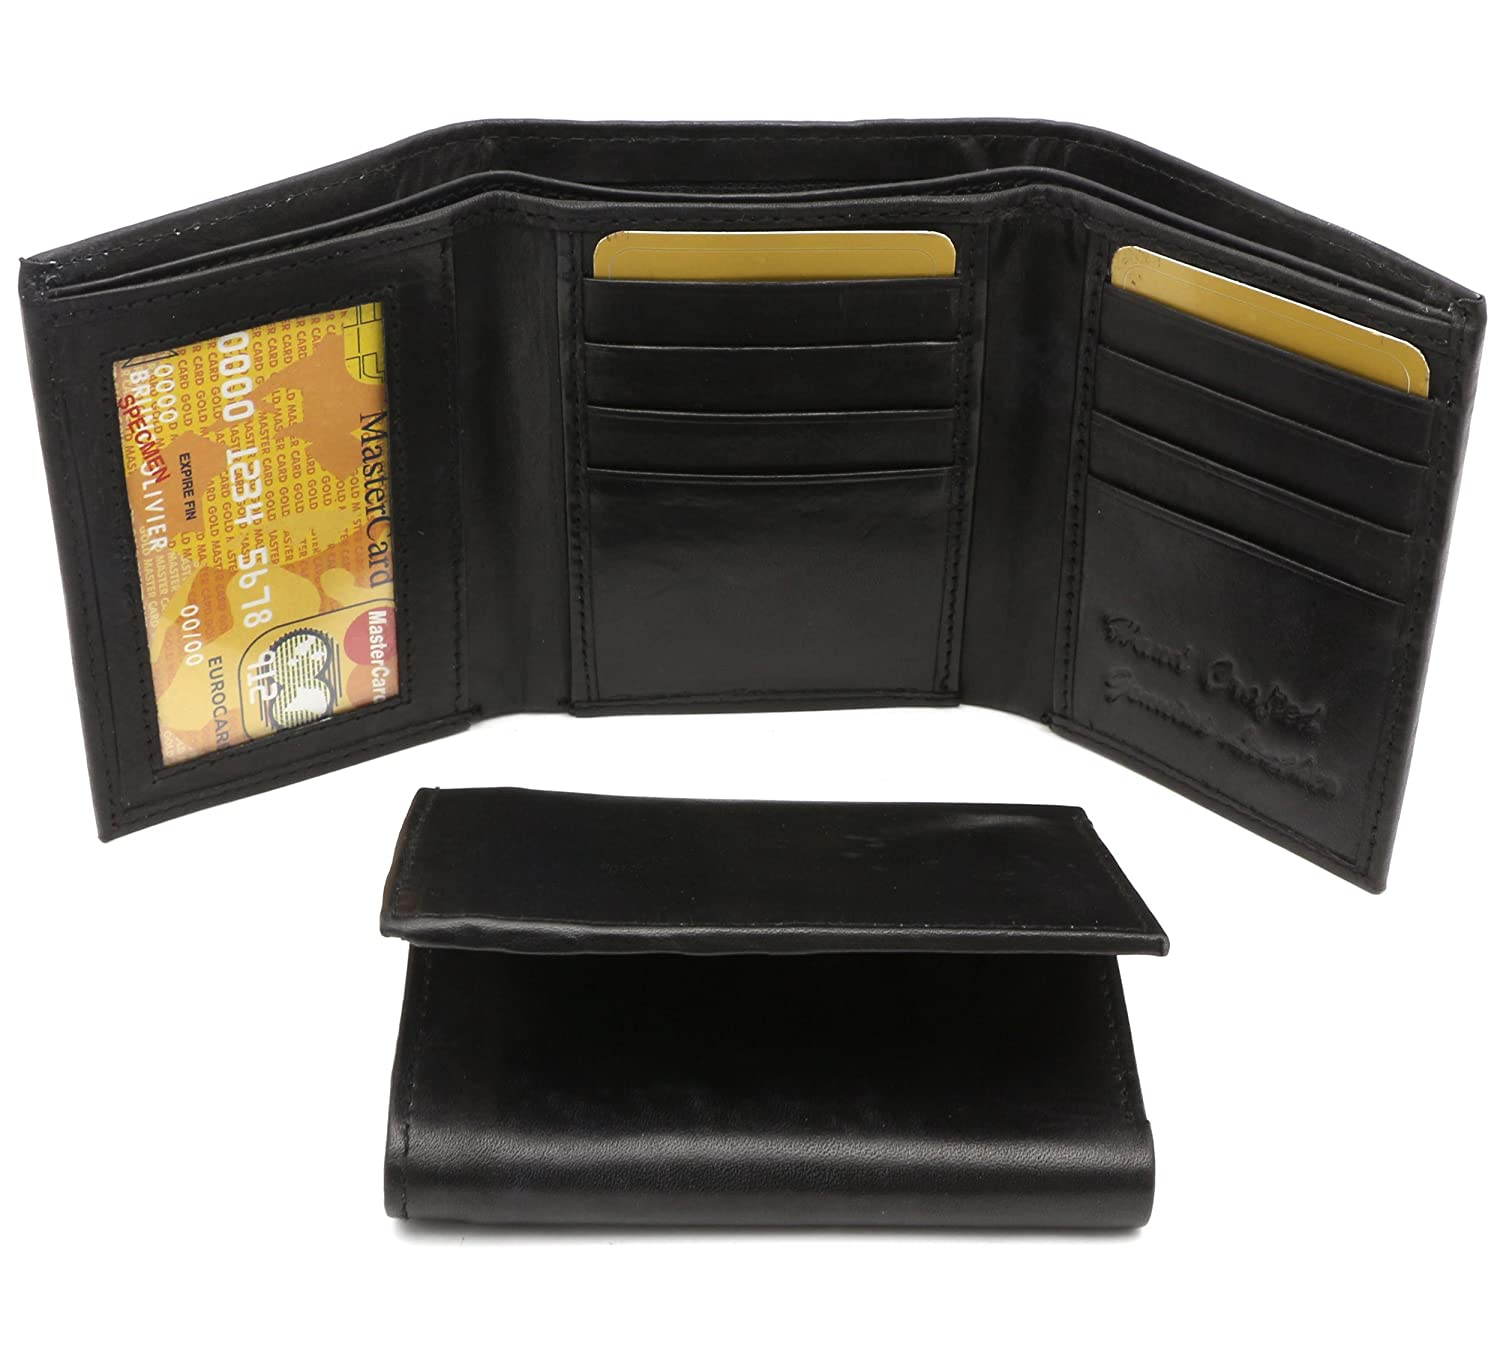 Trifold Genuine Leather Black Plain Compact Wallet With Zipper Currency Pocket